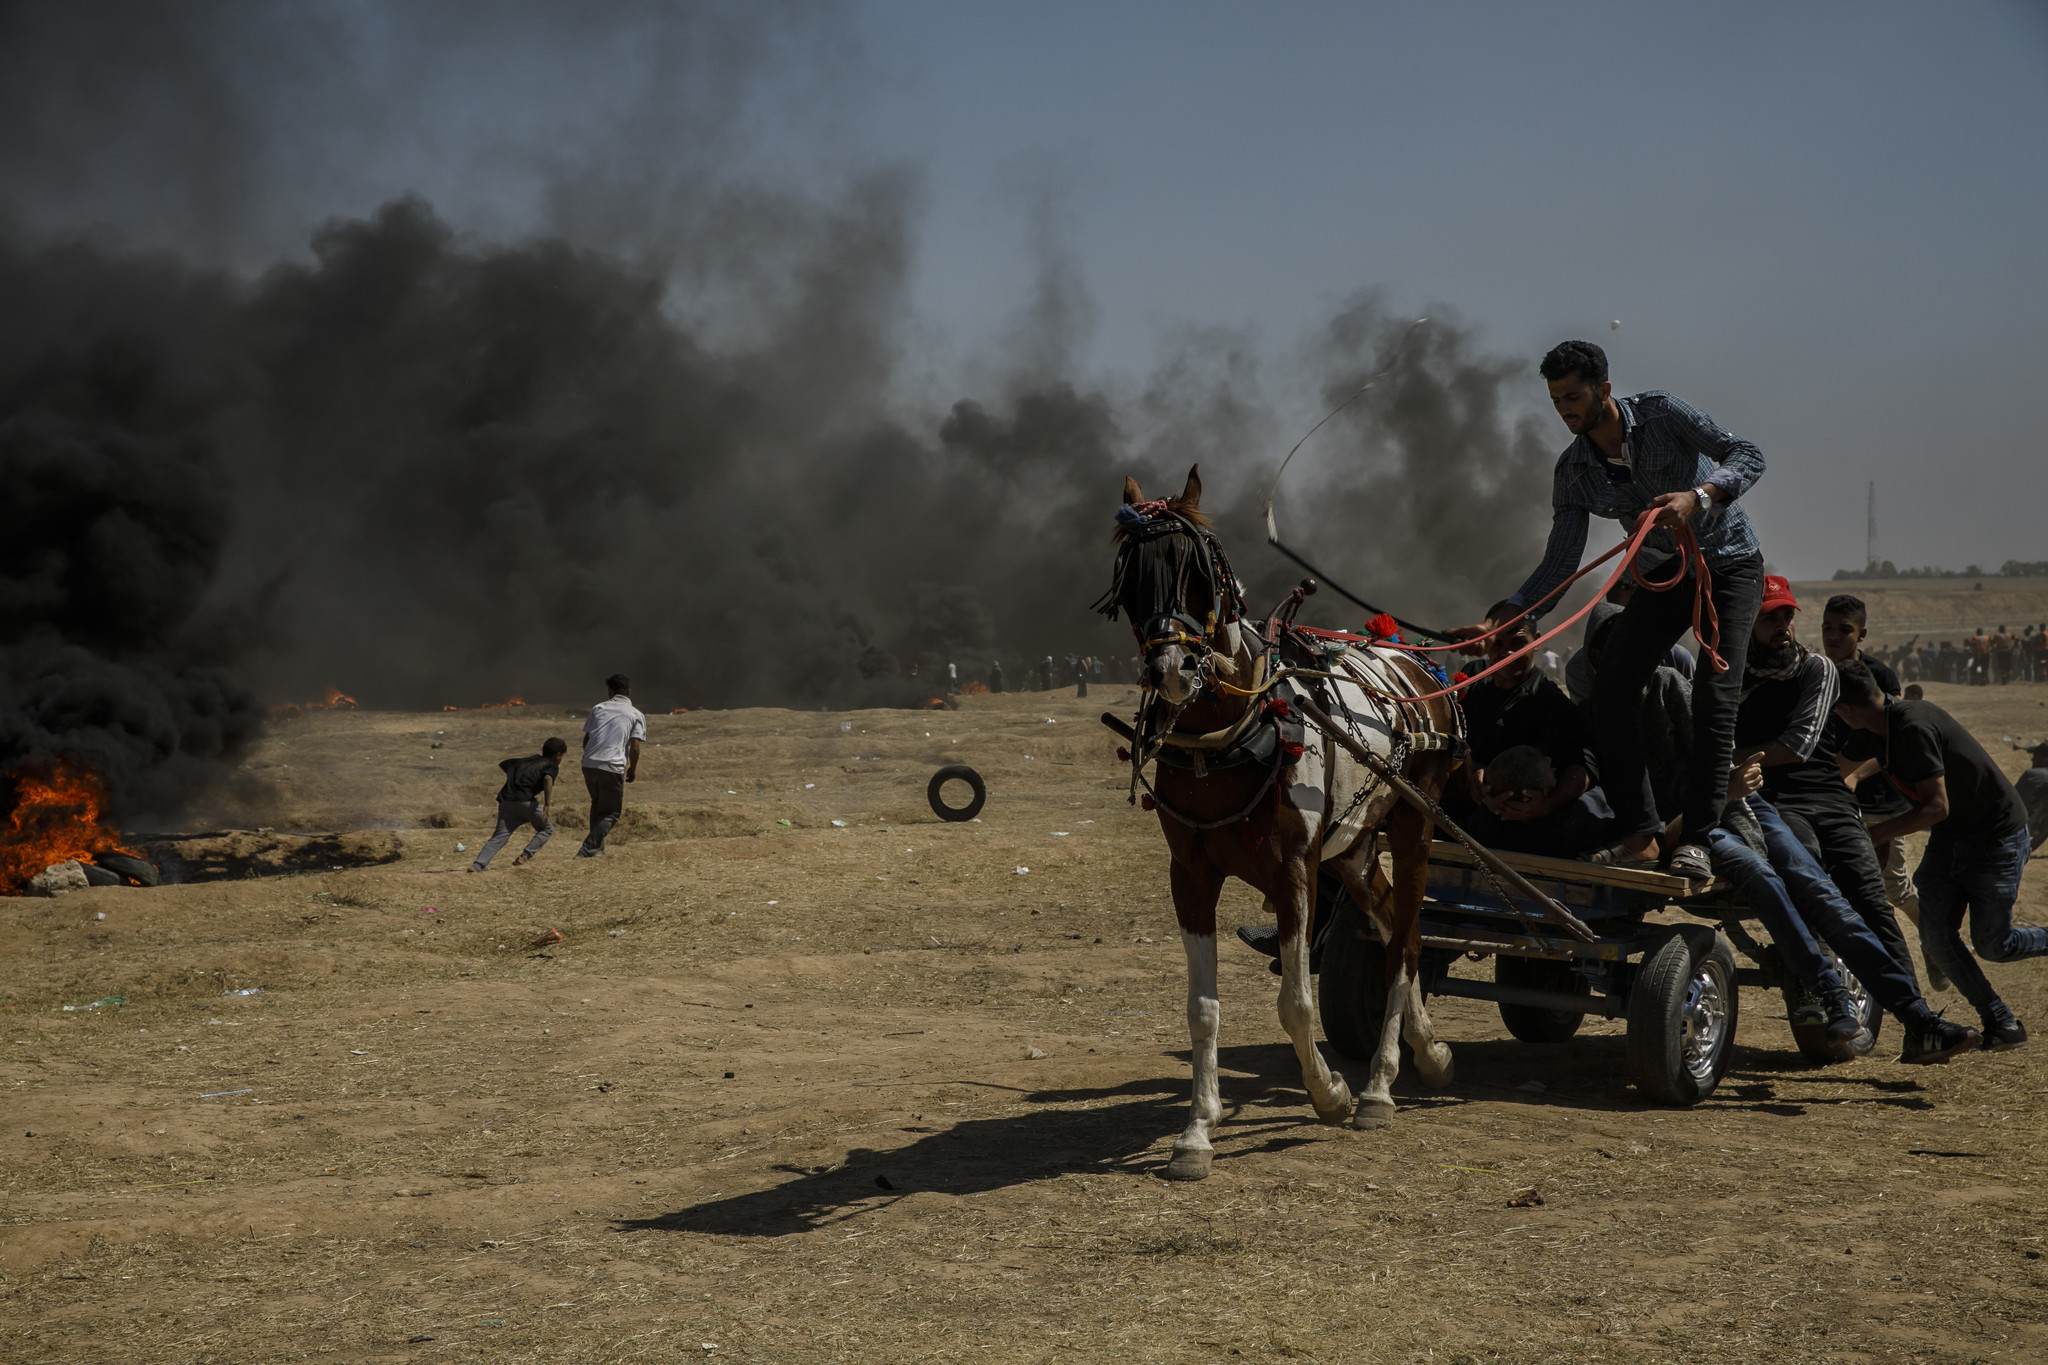 GAZA CITY, GAZA — MONDAY, MAY 14, 2018: Injured protesters are carried away by horse and carriage a